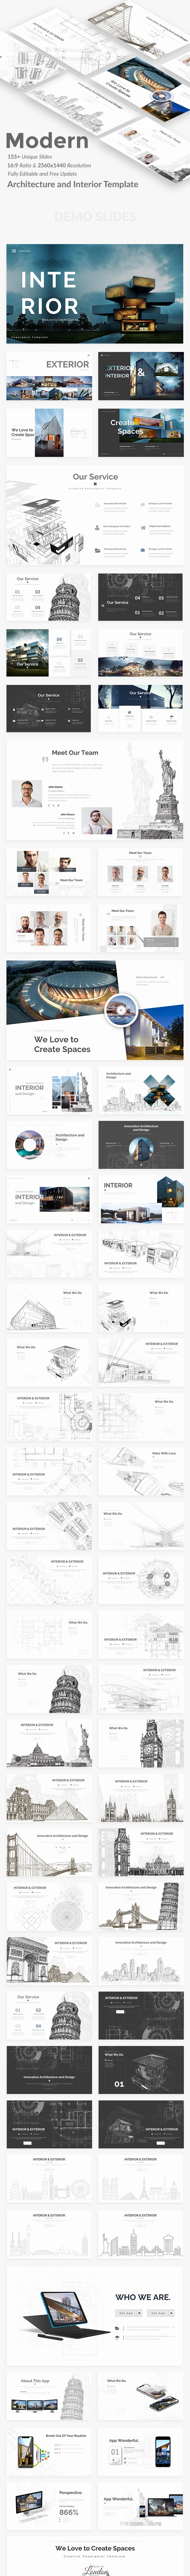 Modern - Architecture and Interior Keynote Template - Creative Keynote Templates